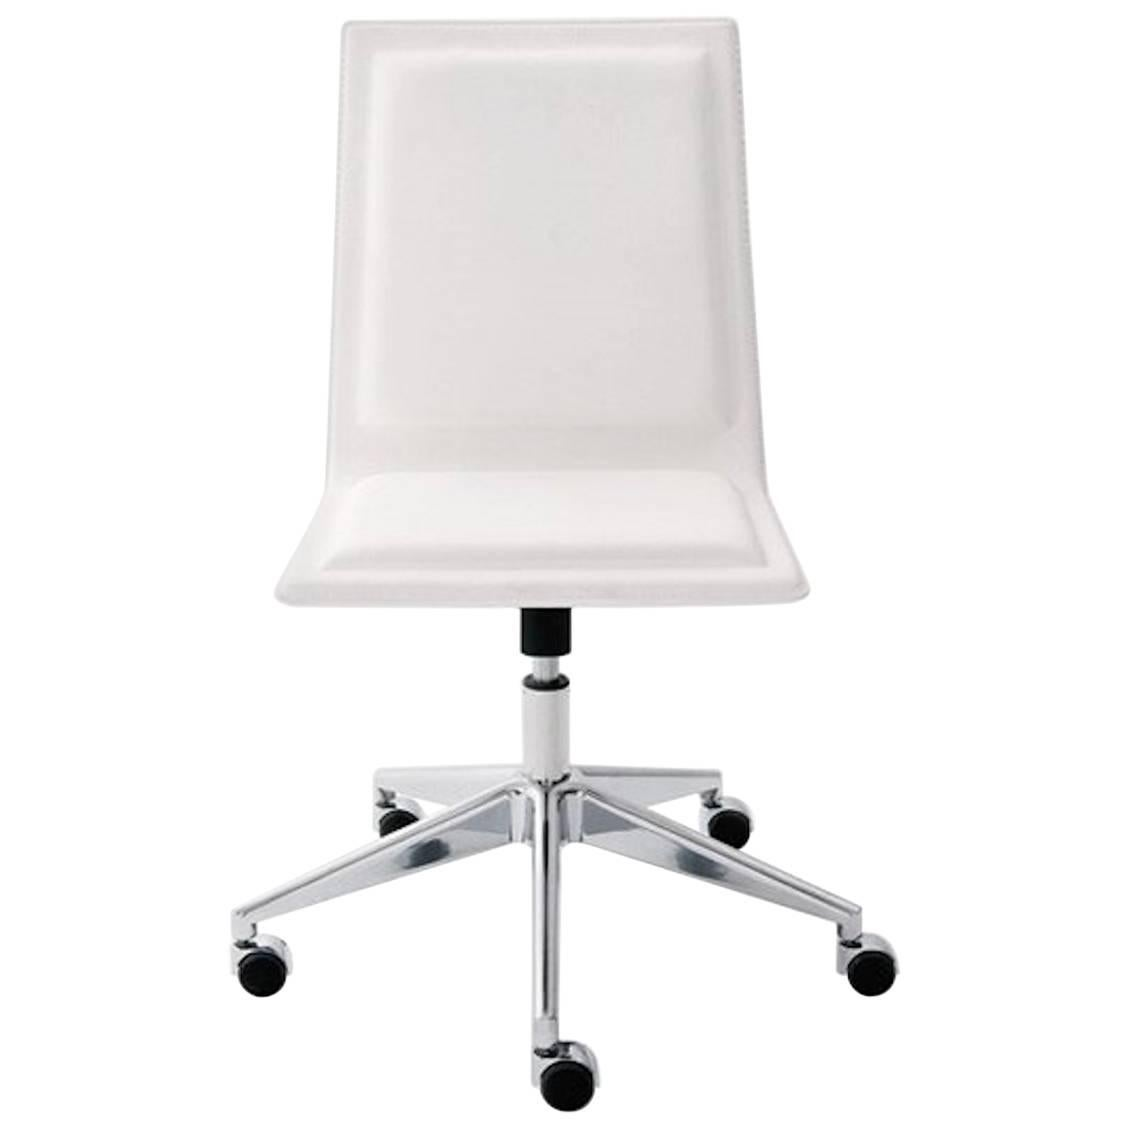 office chair castors monster high ofx 09 ergonomic with or without by gallotti radice for sale